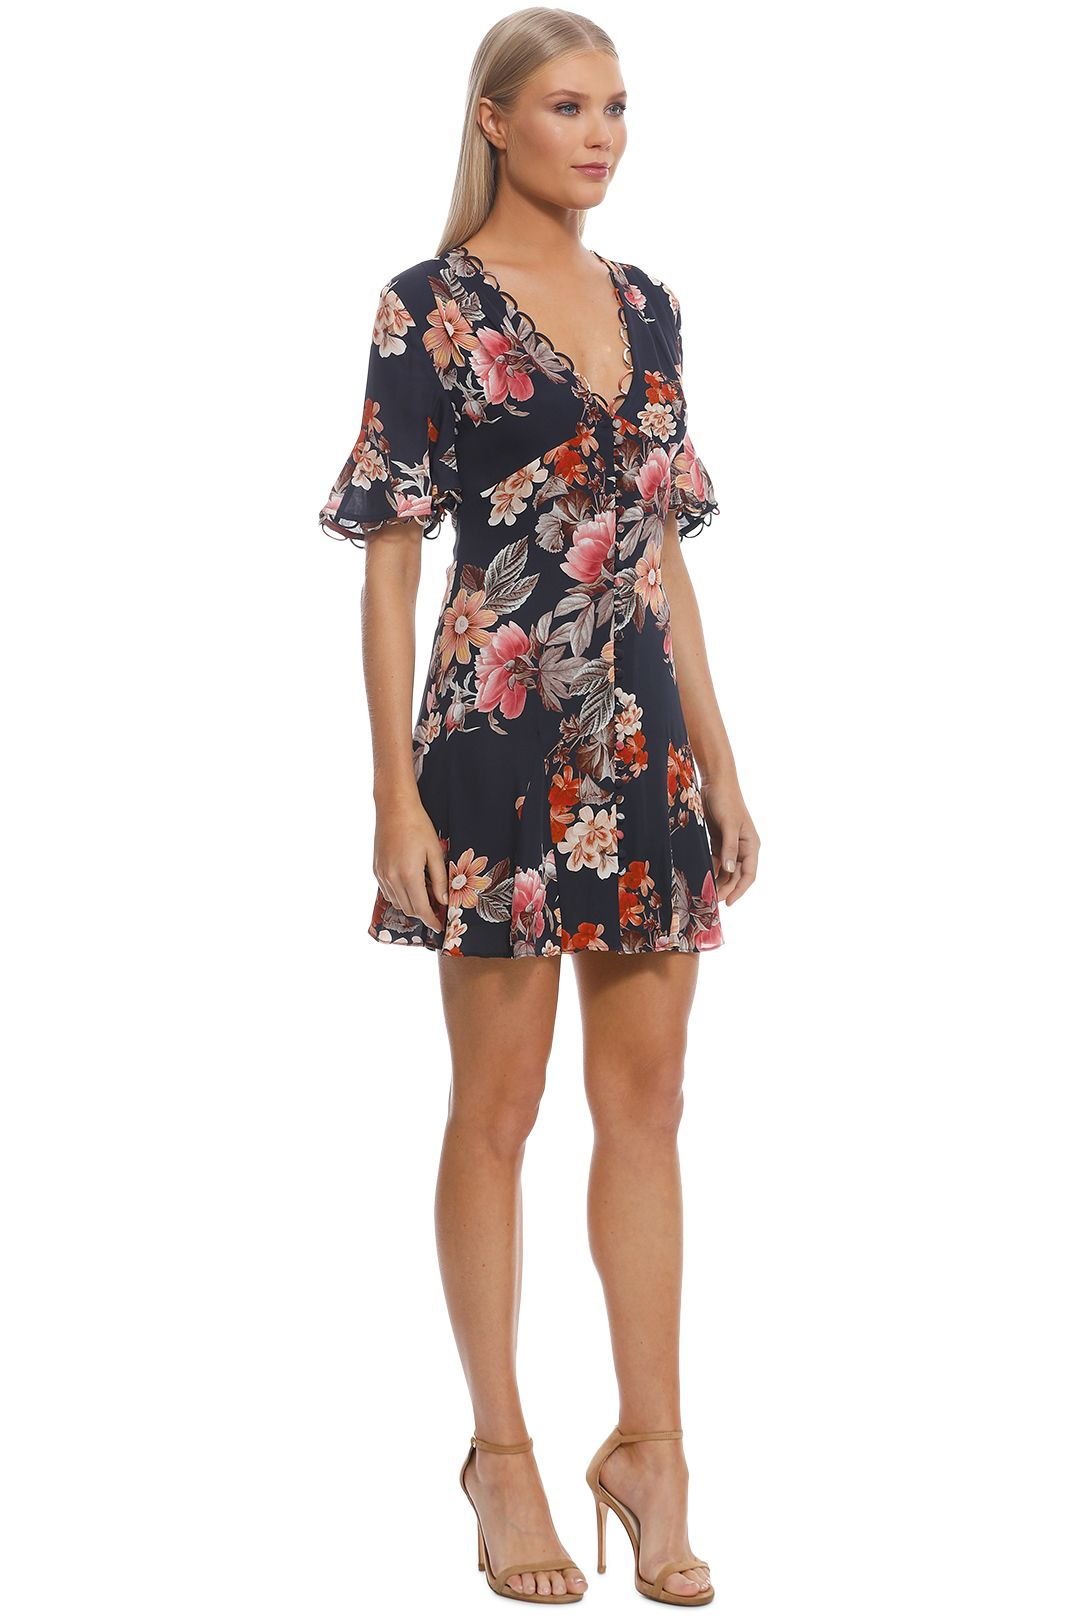 Nicholas The Label - Navy Rust Floral Godet Button Front Dress - Navy - Side